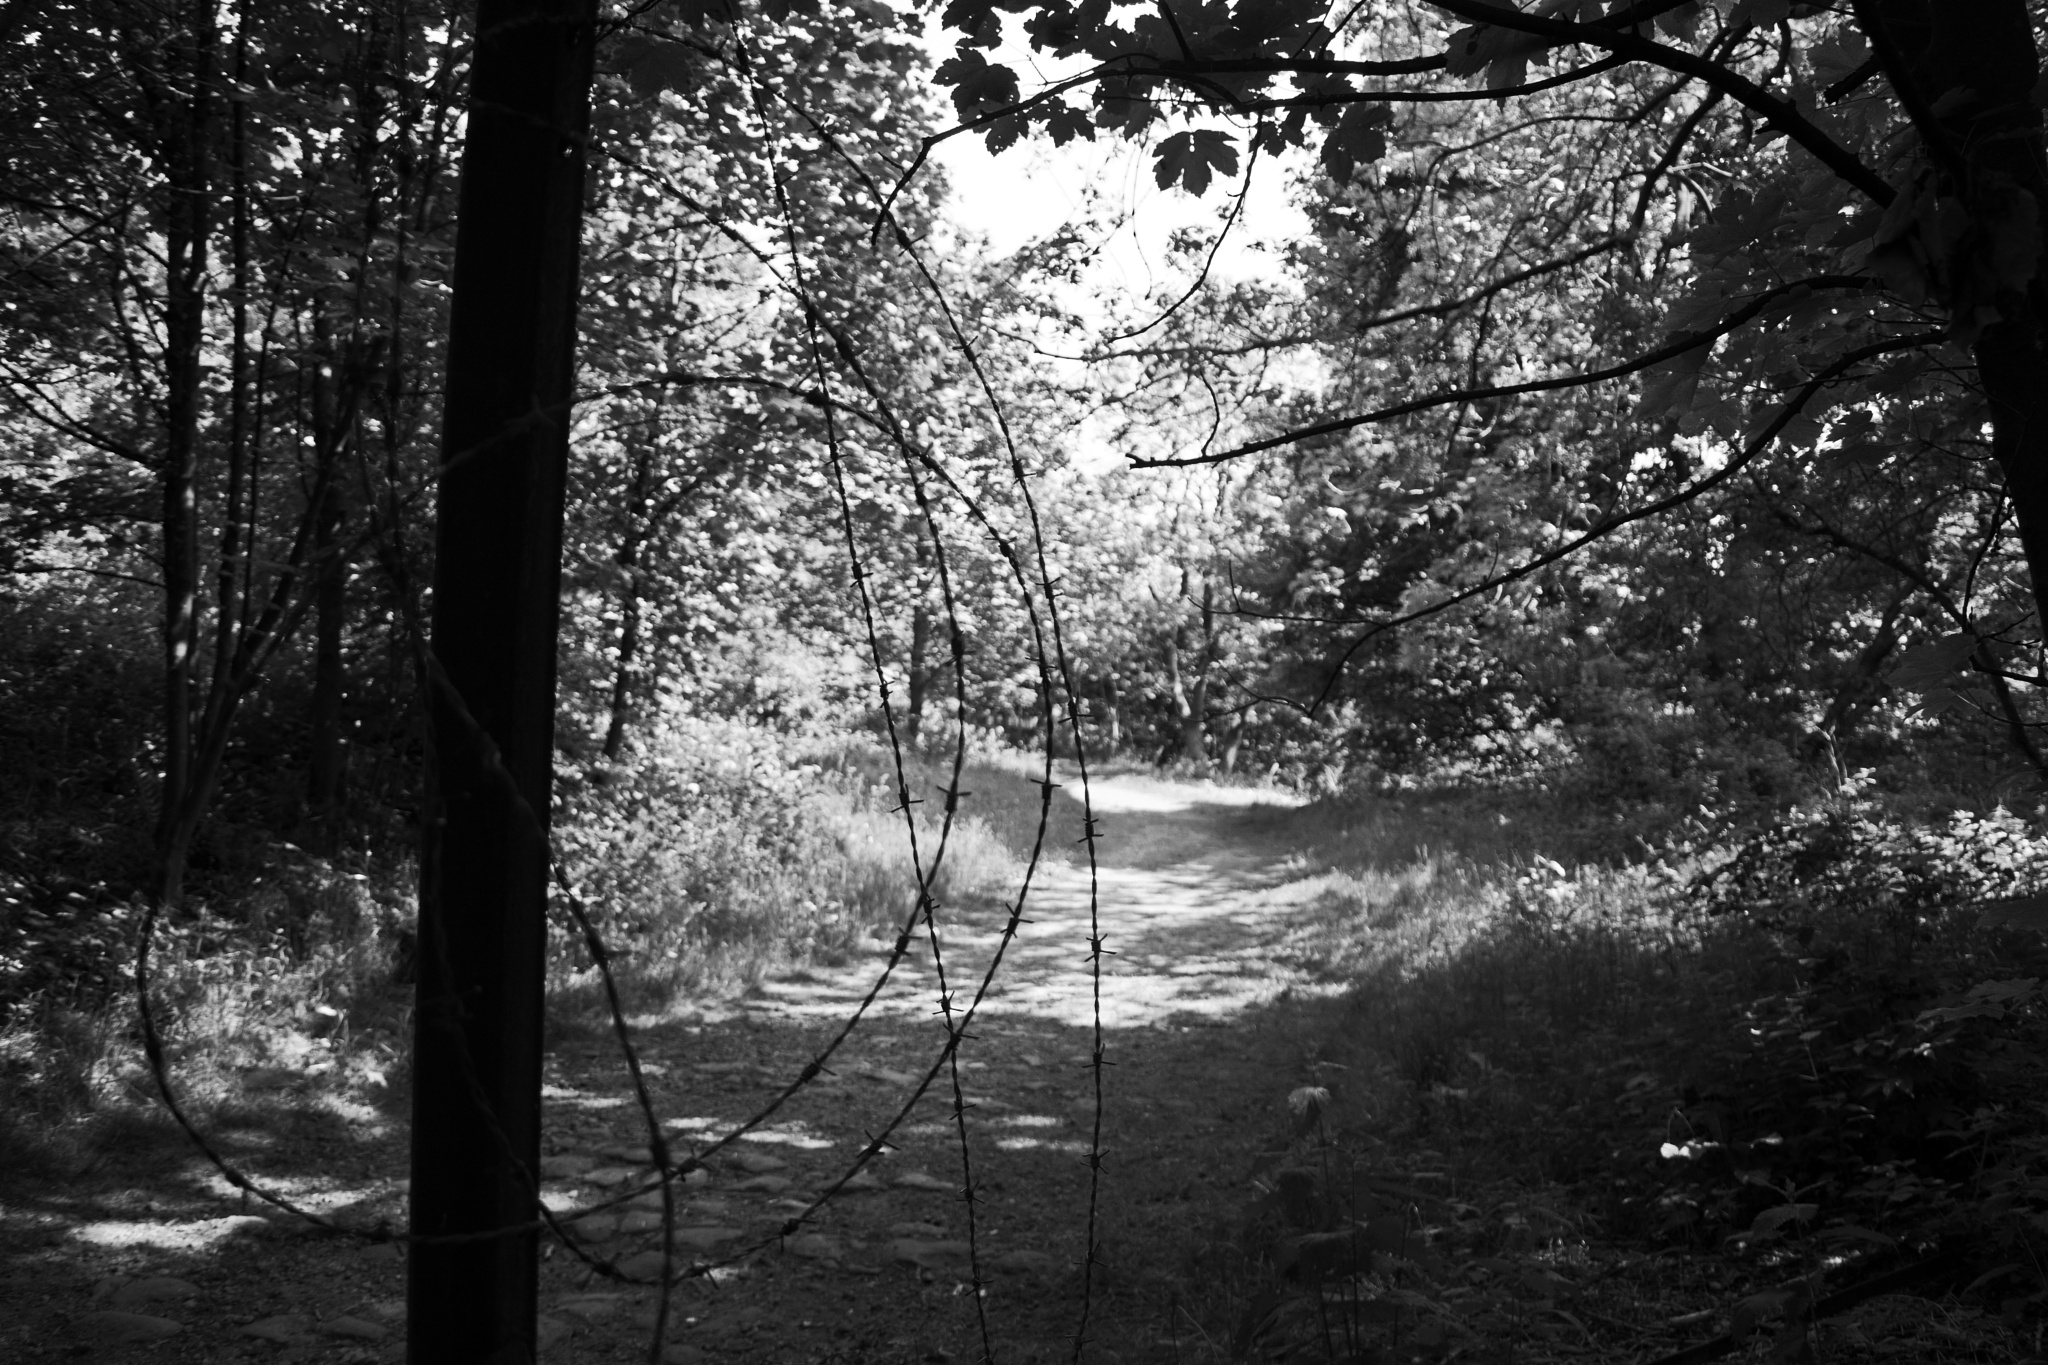 wire in the woods by ianjck